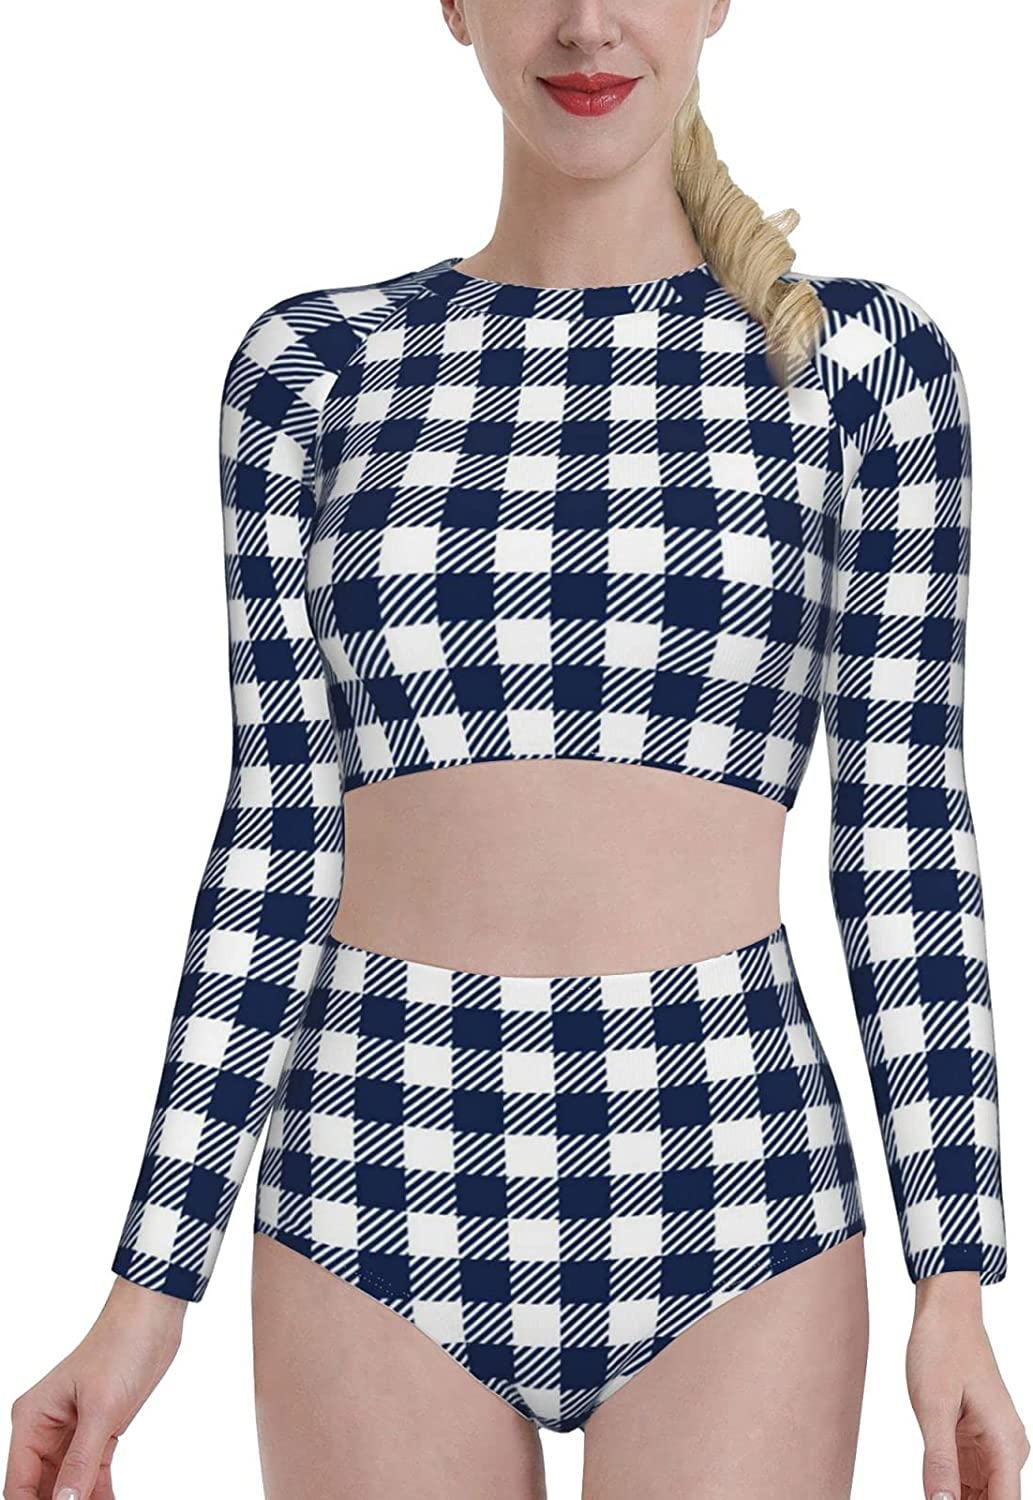 KUOAICY Blue and White Gingham Women's Rash Guard Long Sleeve Bathing Suit with Bra Swimsuit High Waist Pants